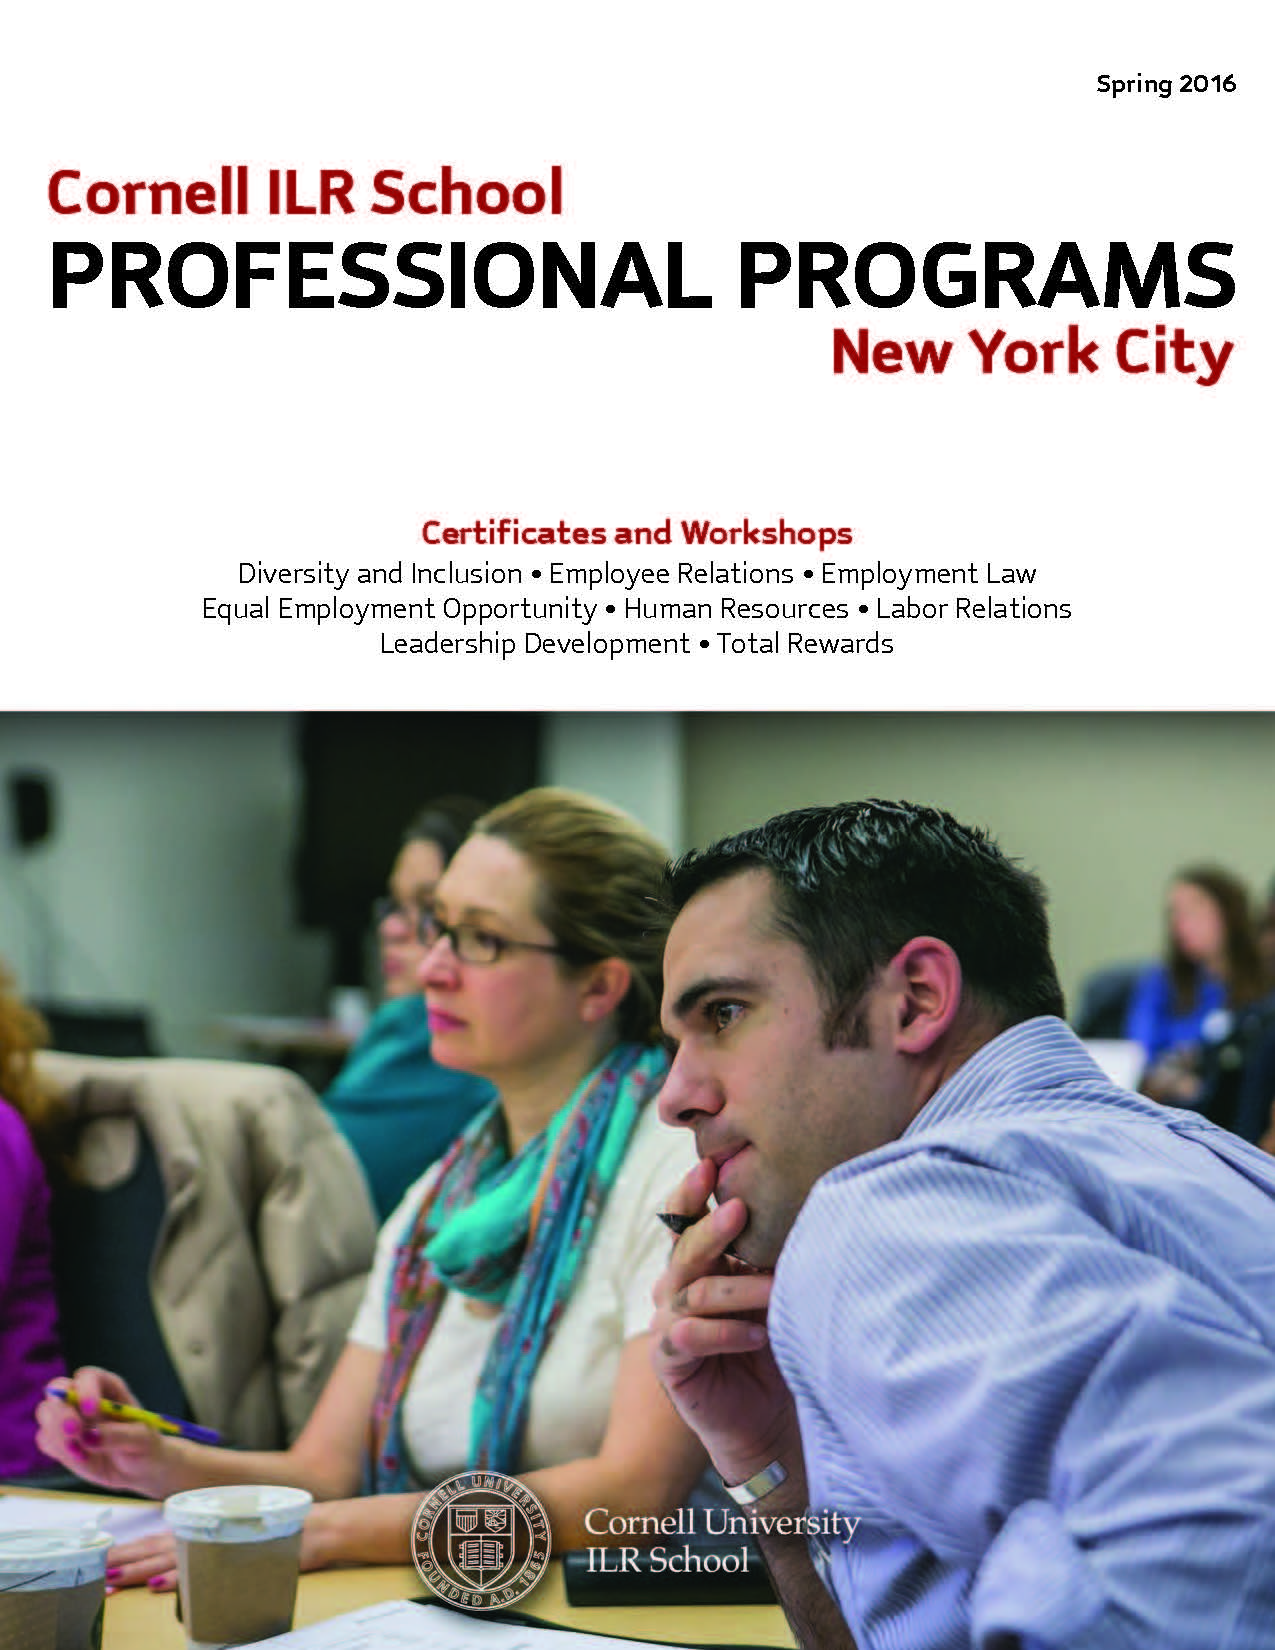 2015 Professional Programs Guide